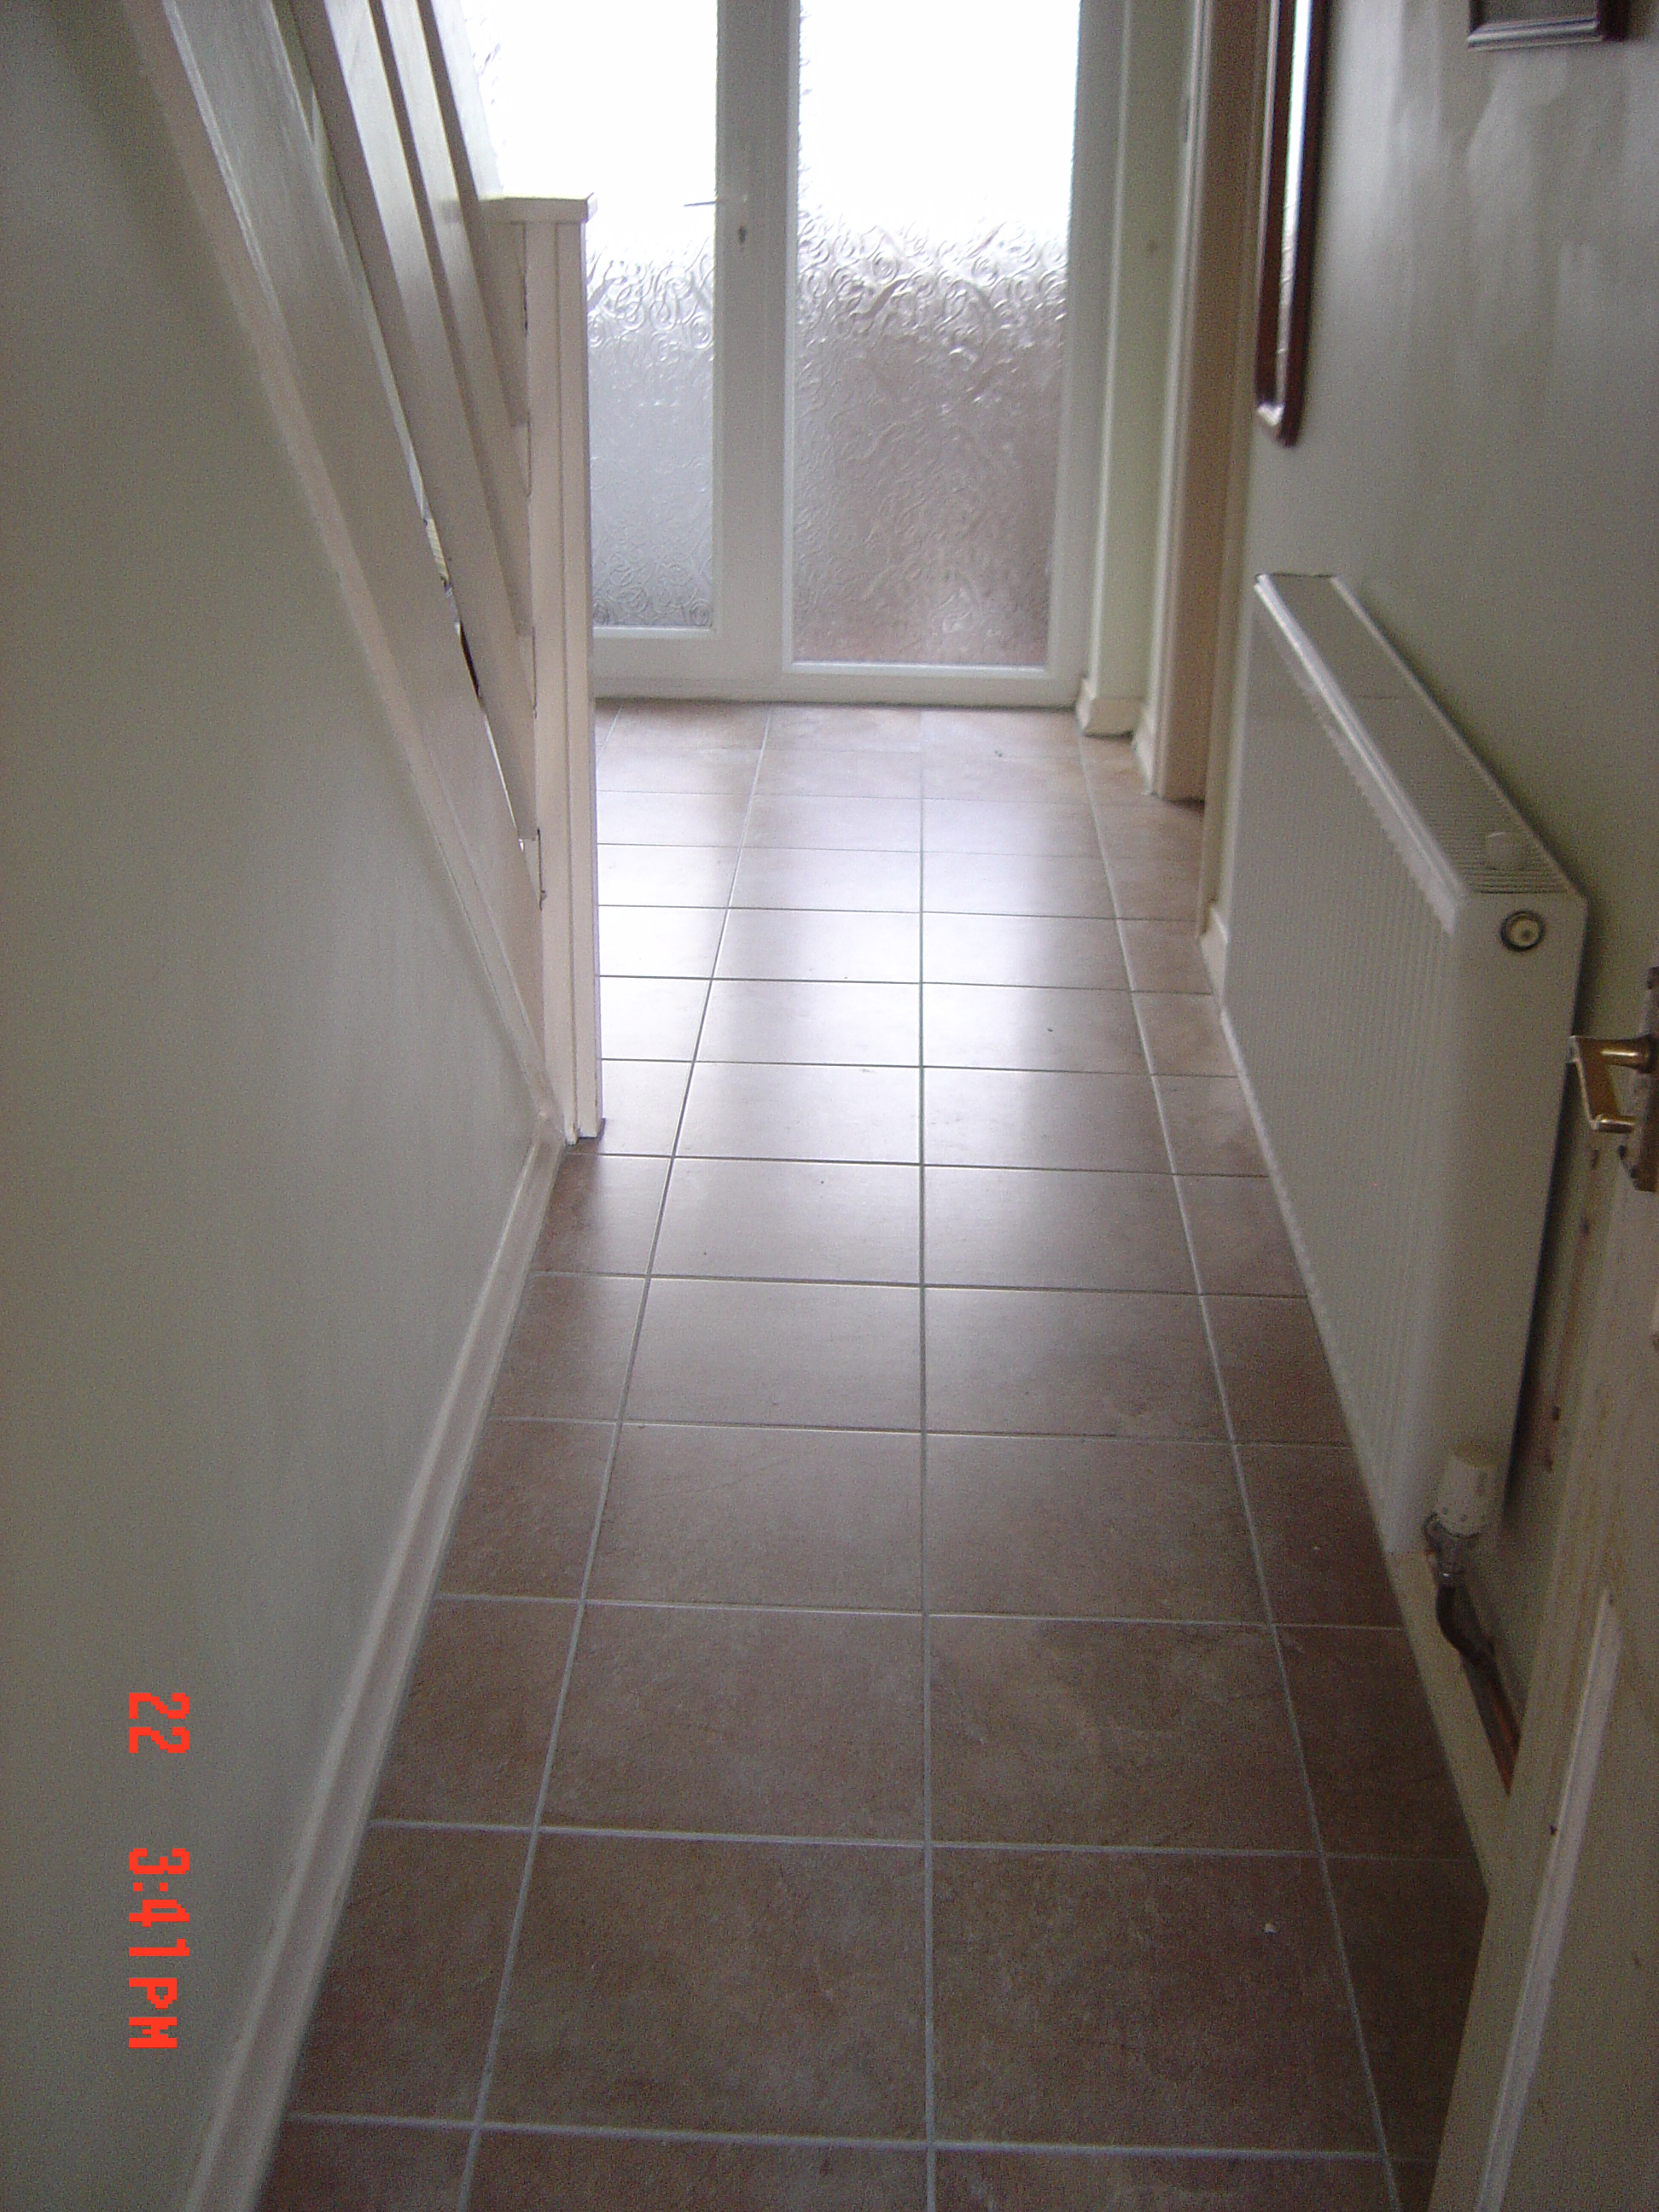 Tiling Floors Pab And Son Plumbing And Property Services